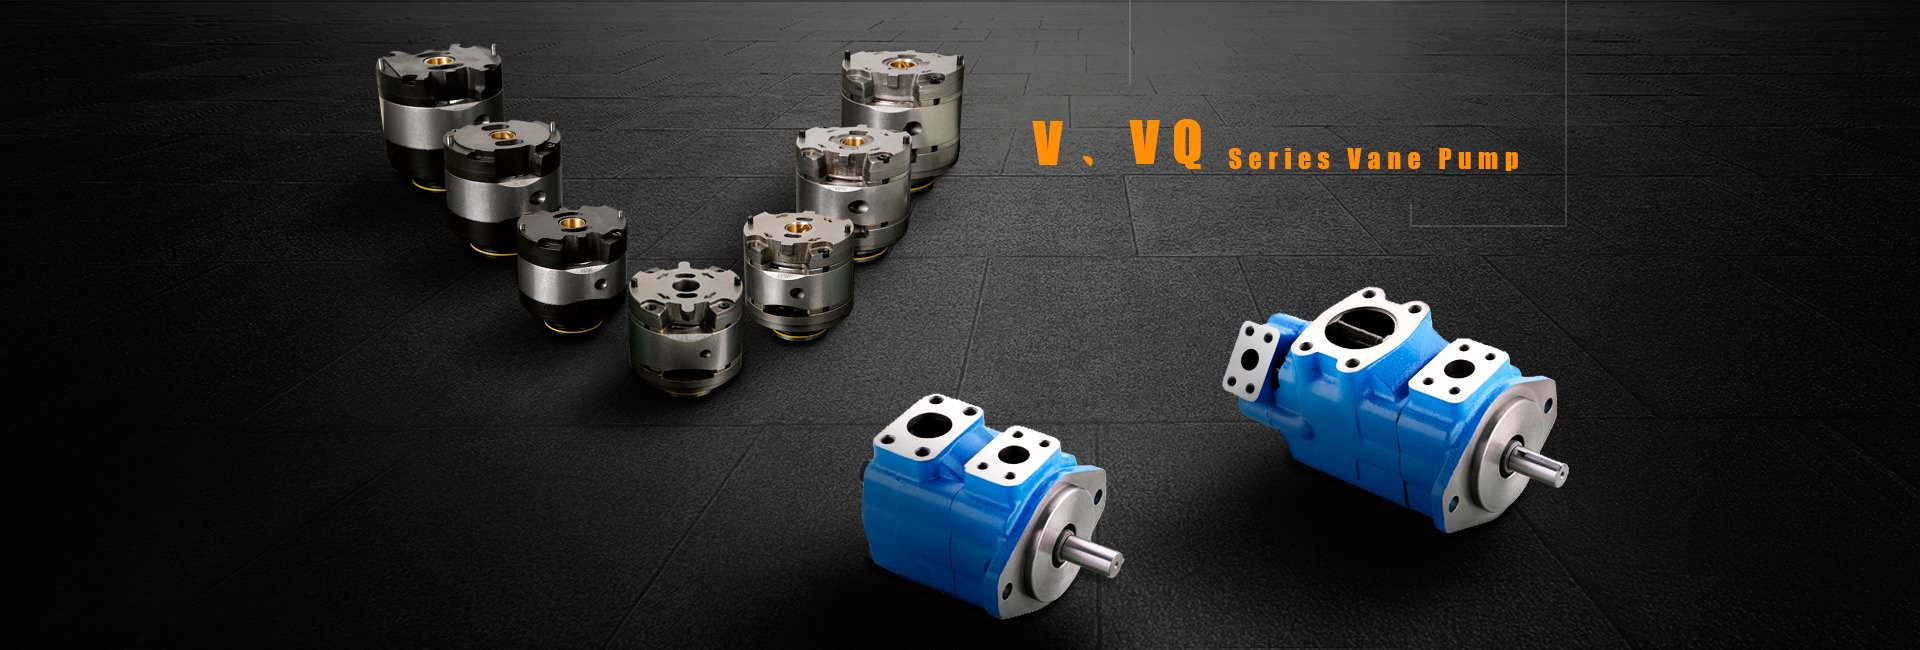 V, VQ Series vane Pump